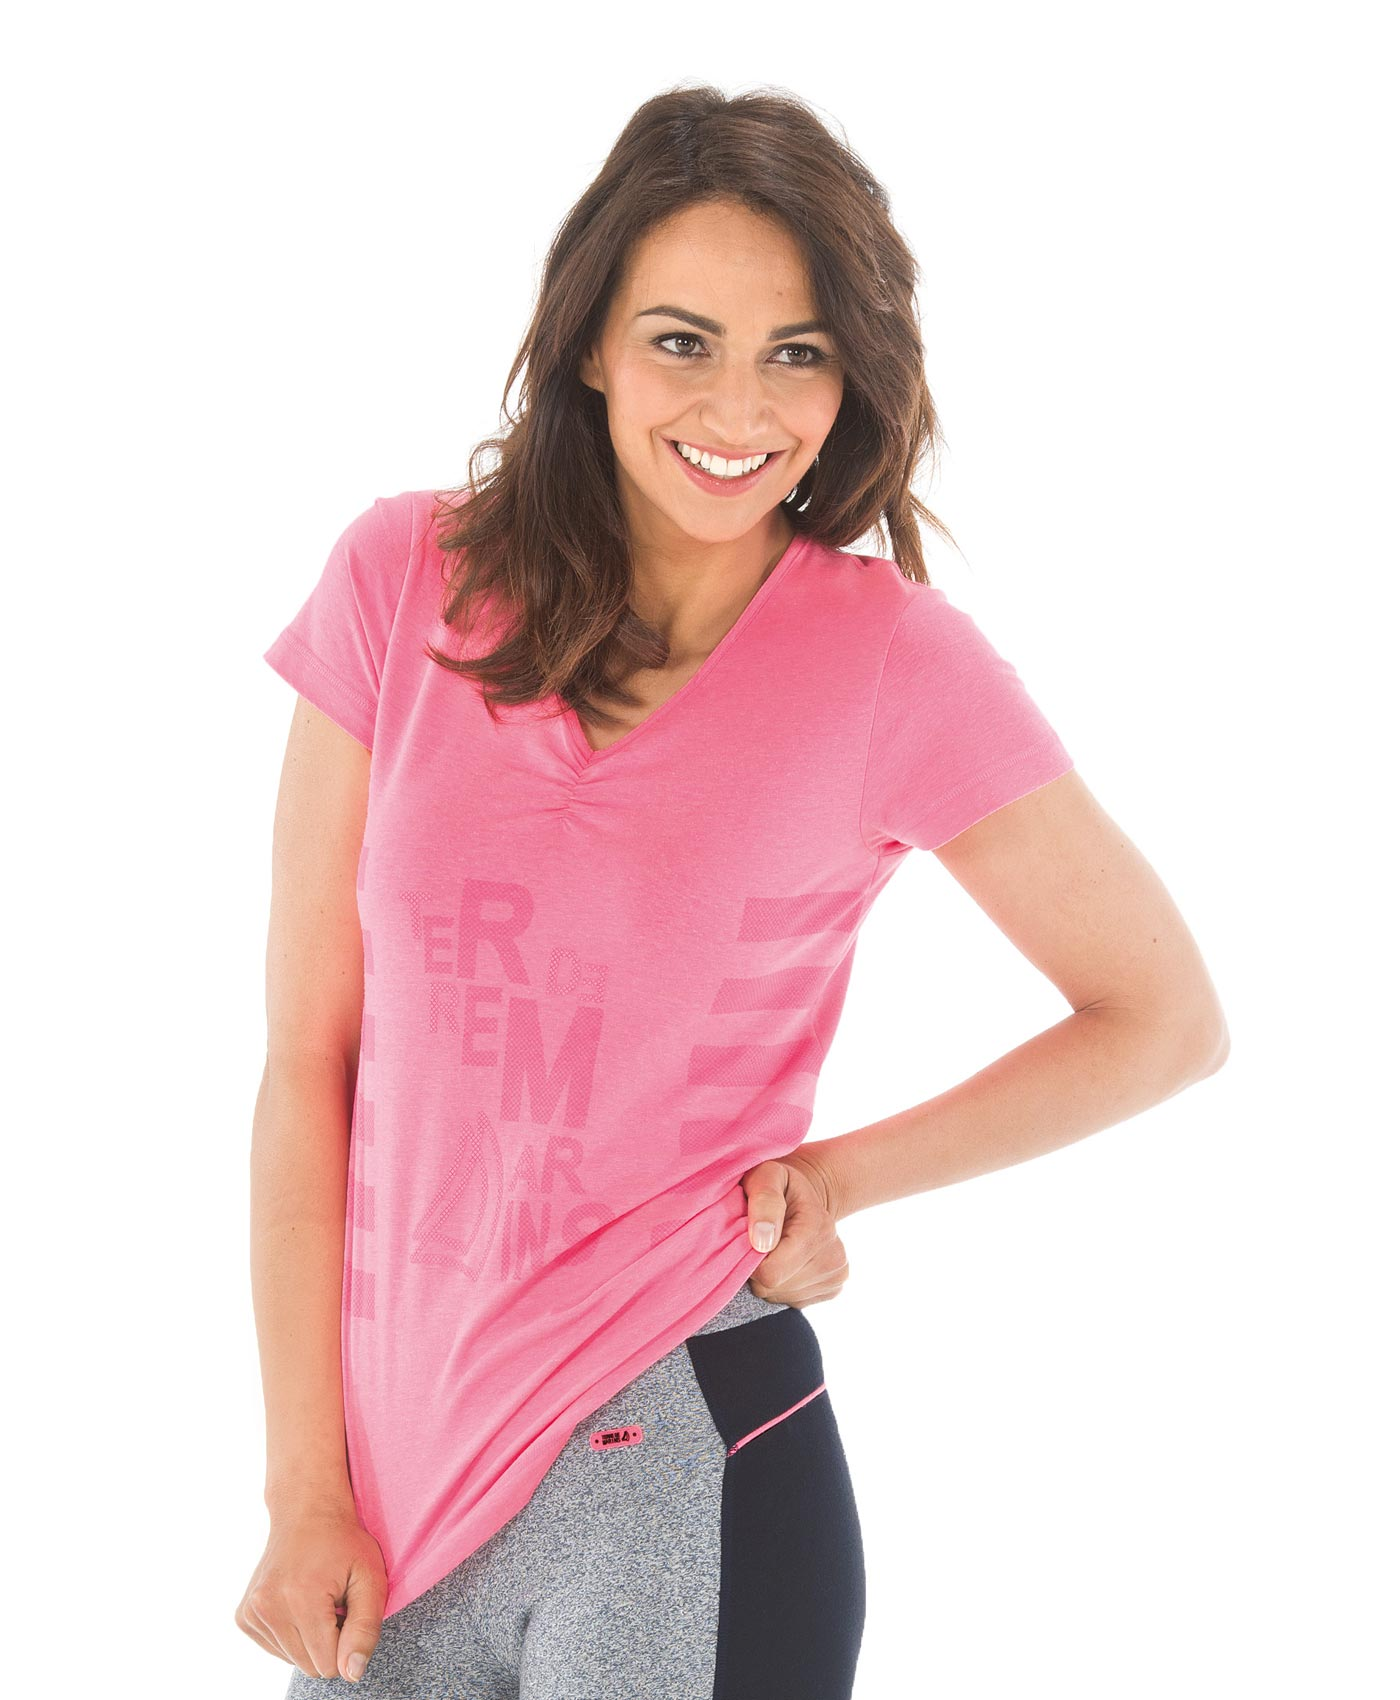 Tee-shirt manches courtes femme rose fluo chiné - Mode marine Femme